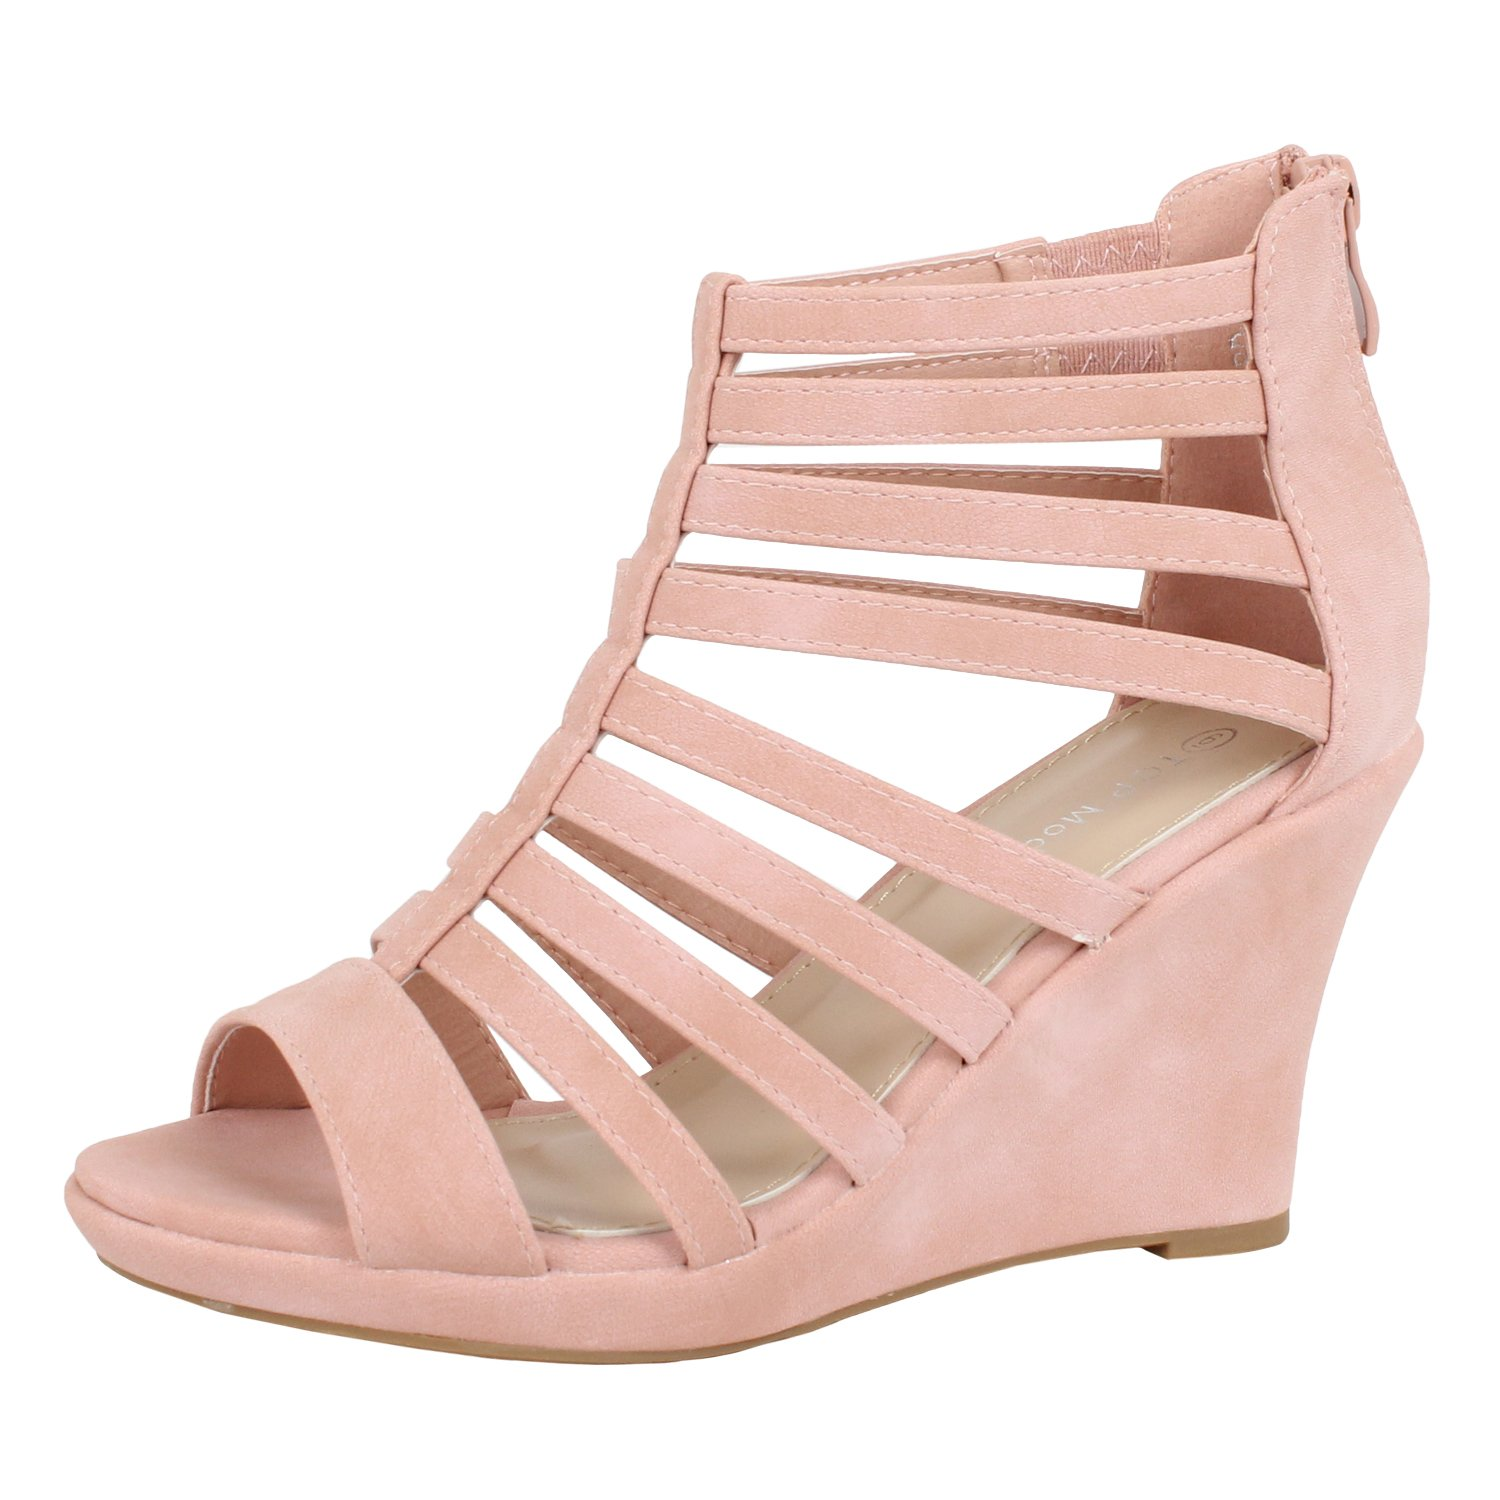 Top Moda Womens Lord-7 Gladiator Inspired Bird Cage Strappy Wedge